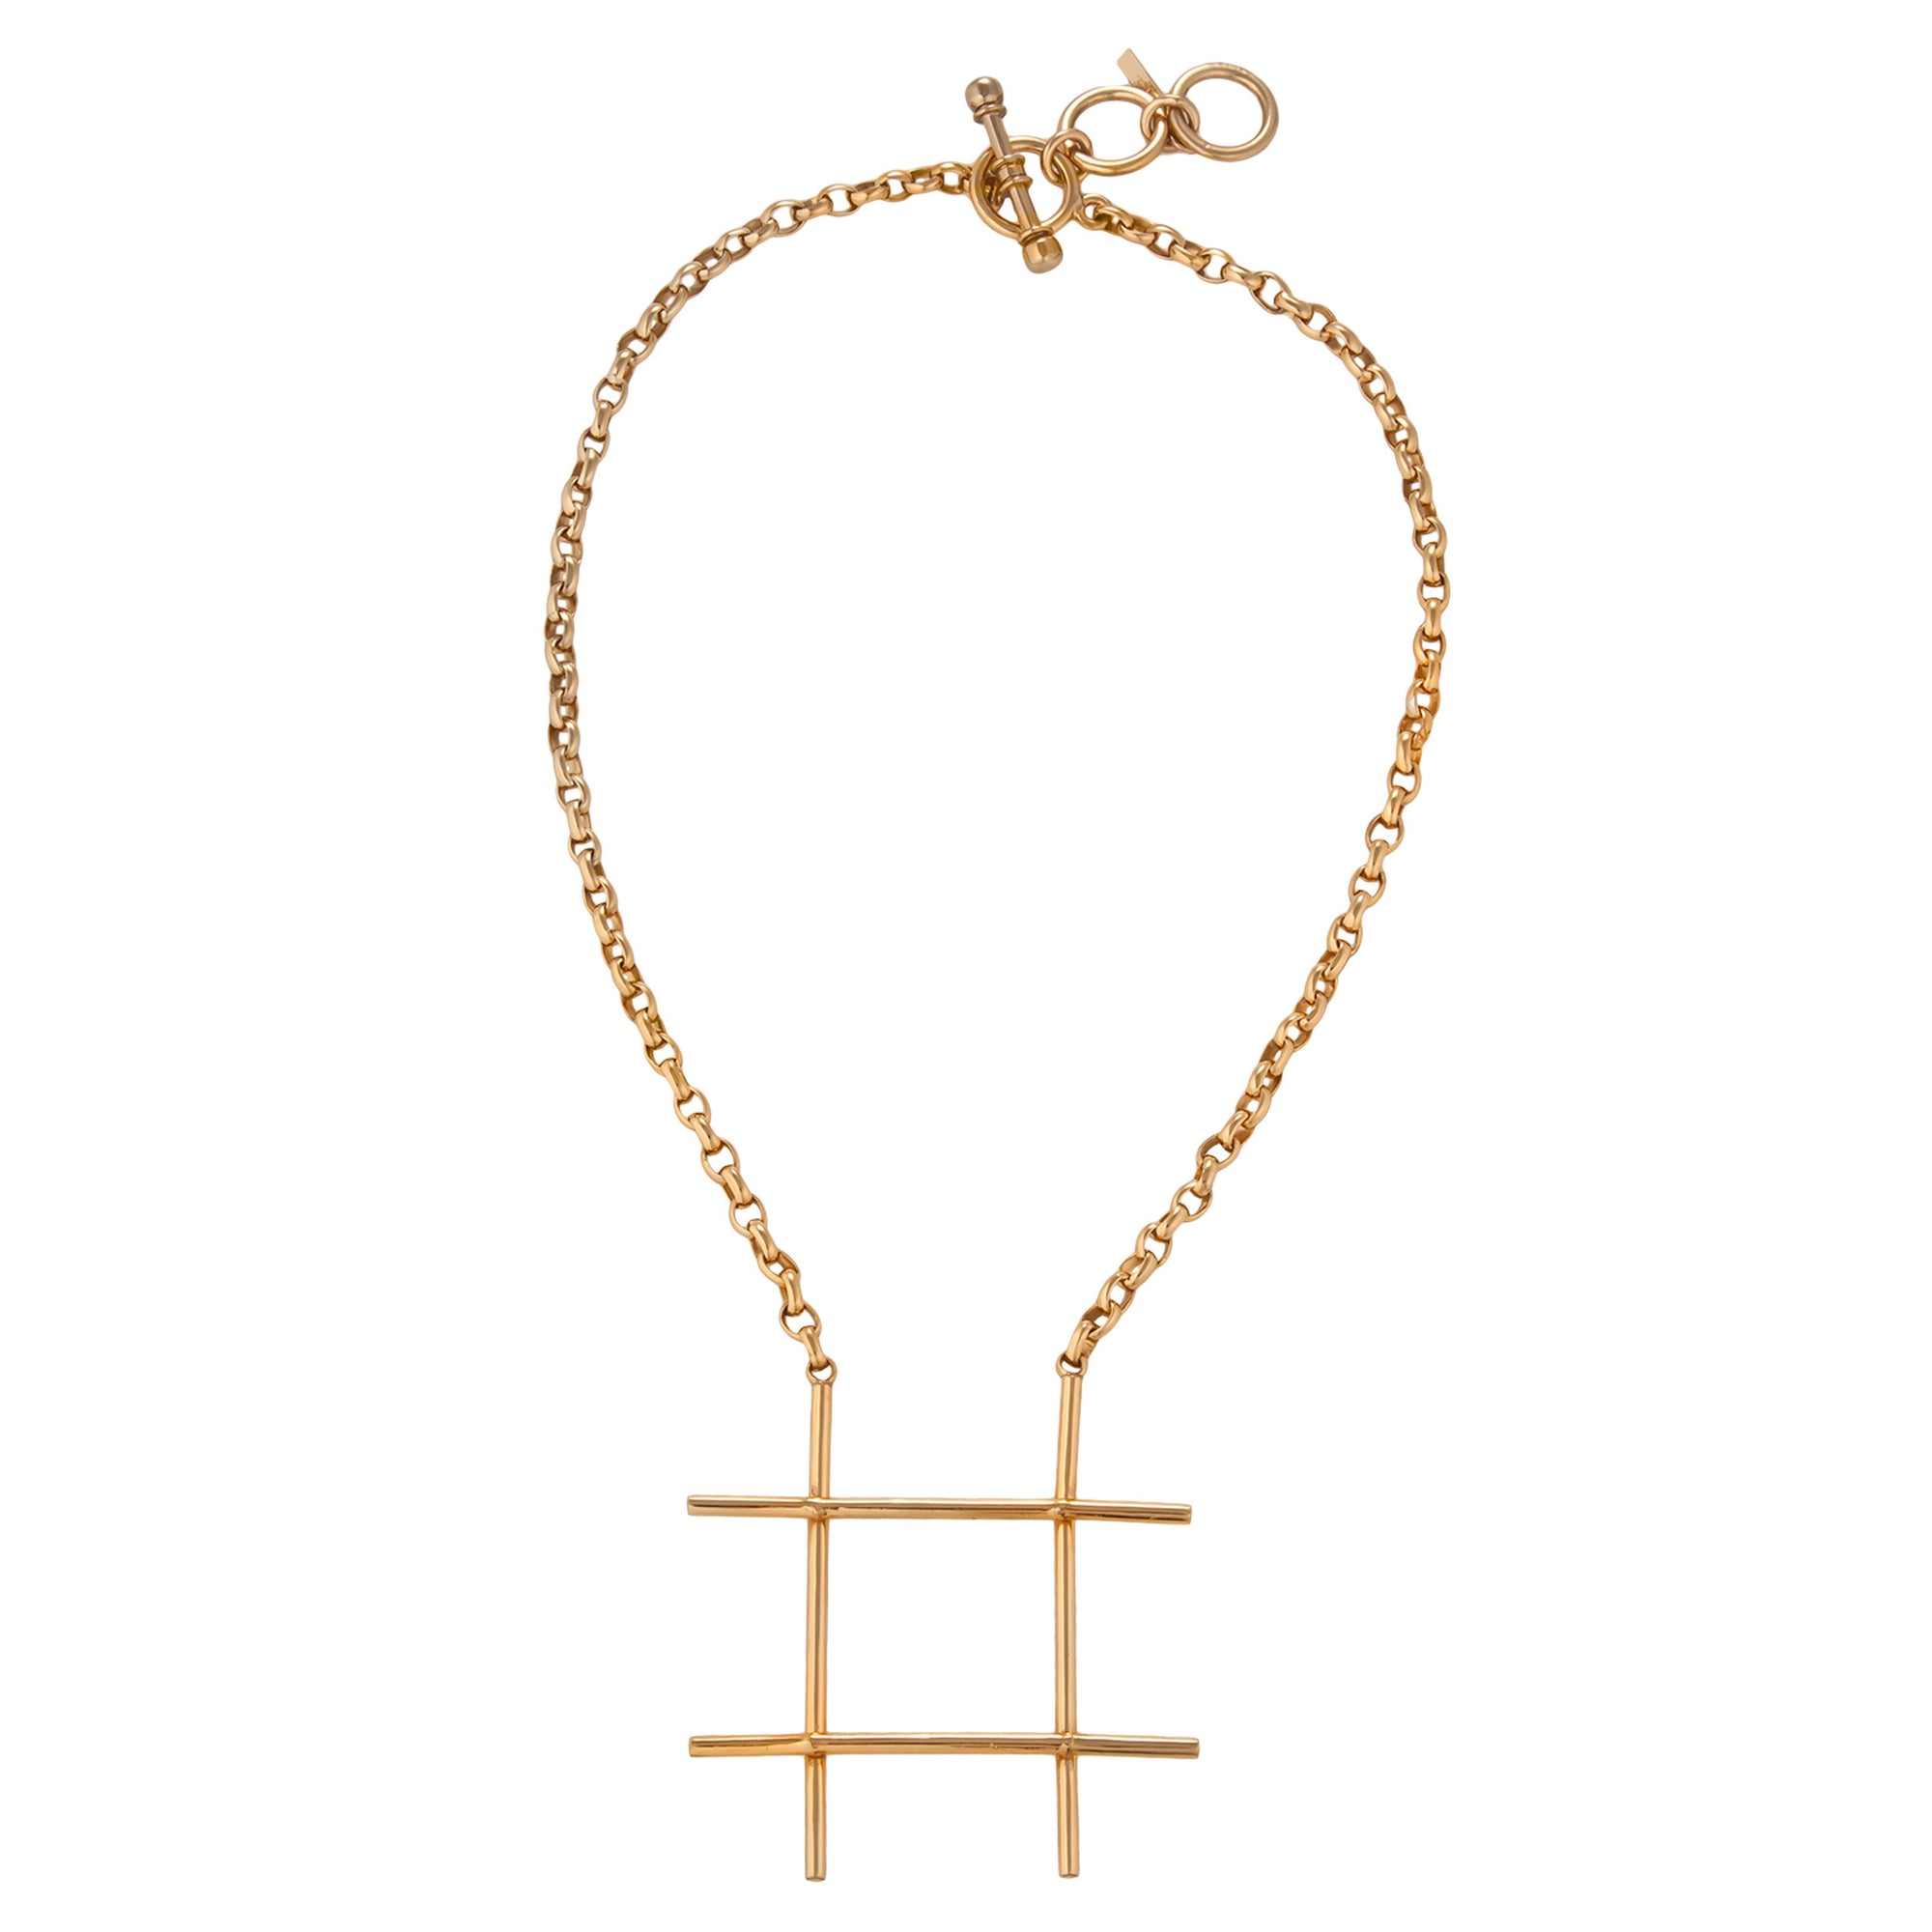 Alchemia # 'Hash Tag' Necklace | Charles Albert Jewelry